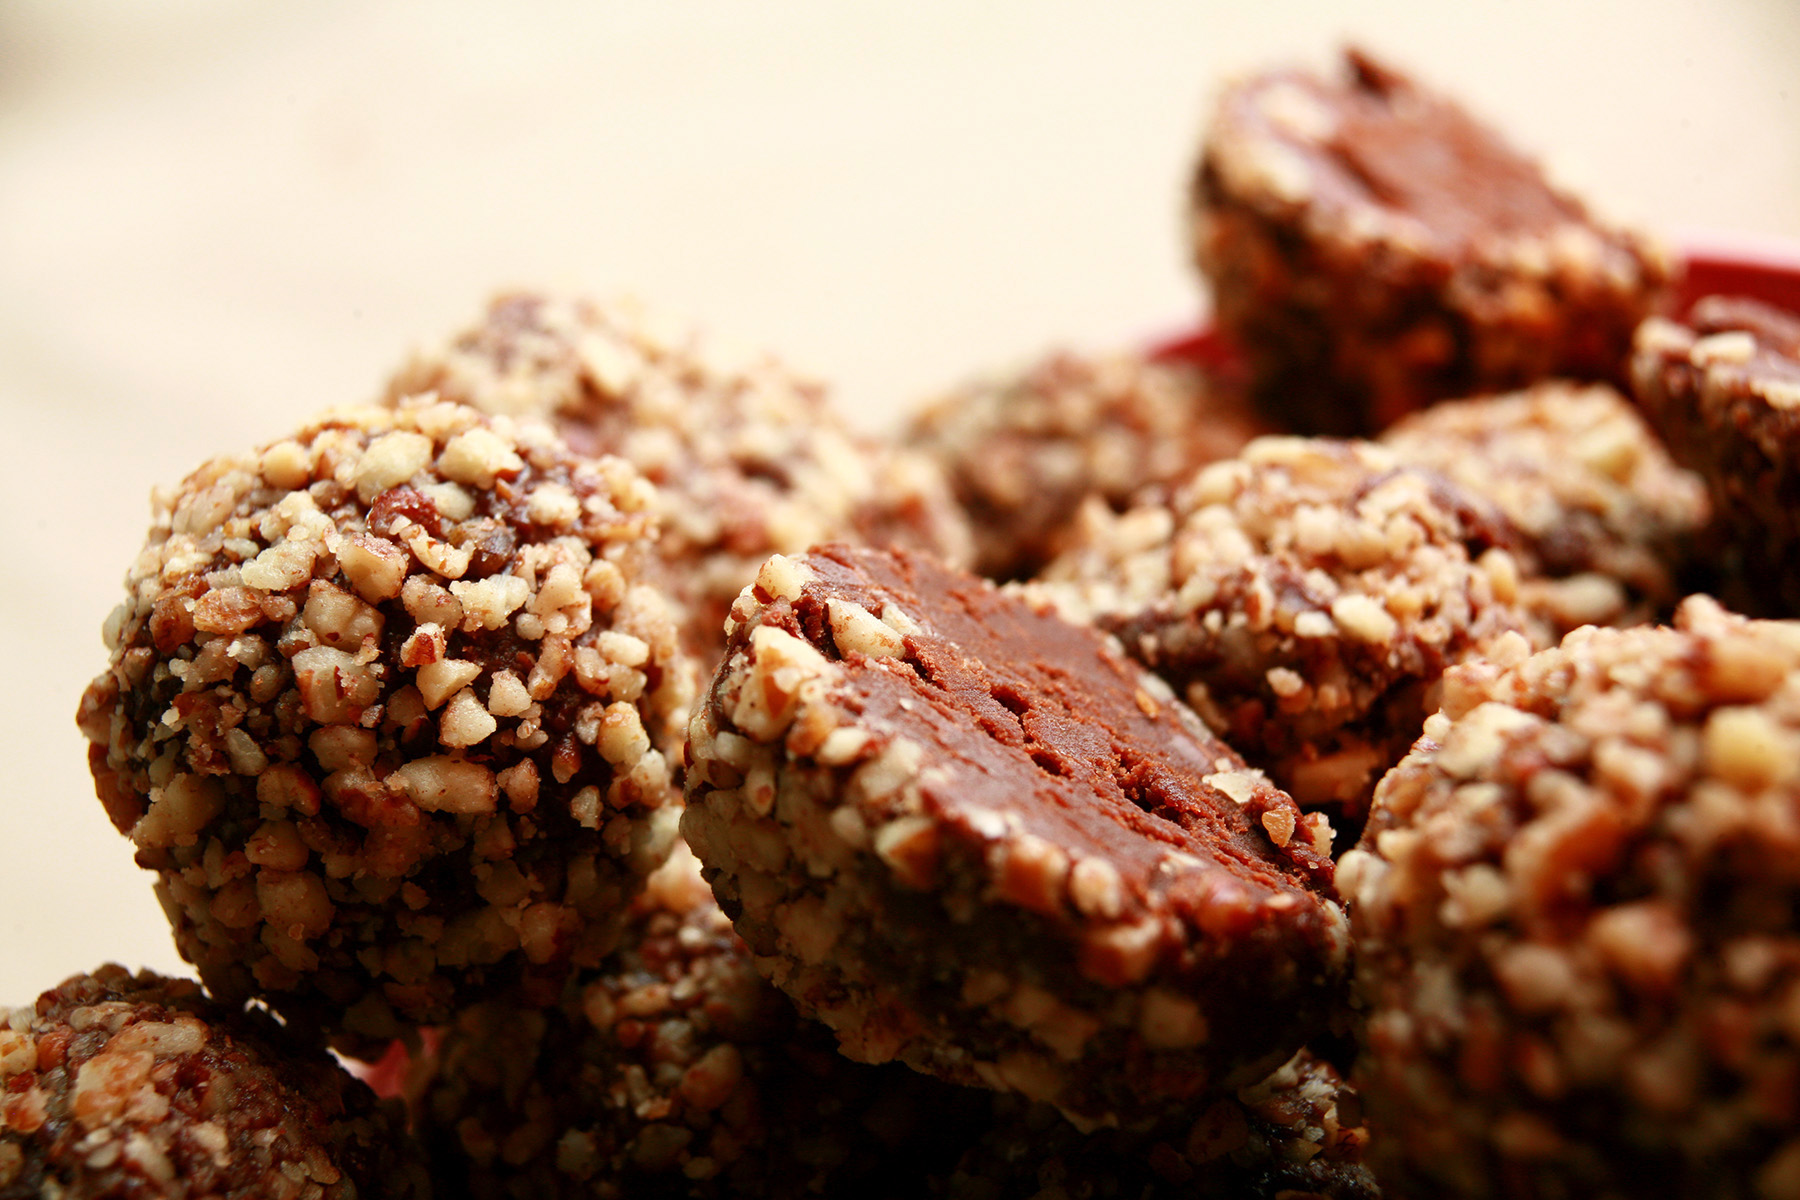 A red plate piled high with low carb bananas foster truffles. They are coated in crushed pecans.